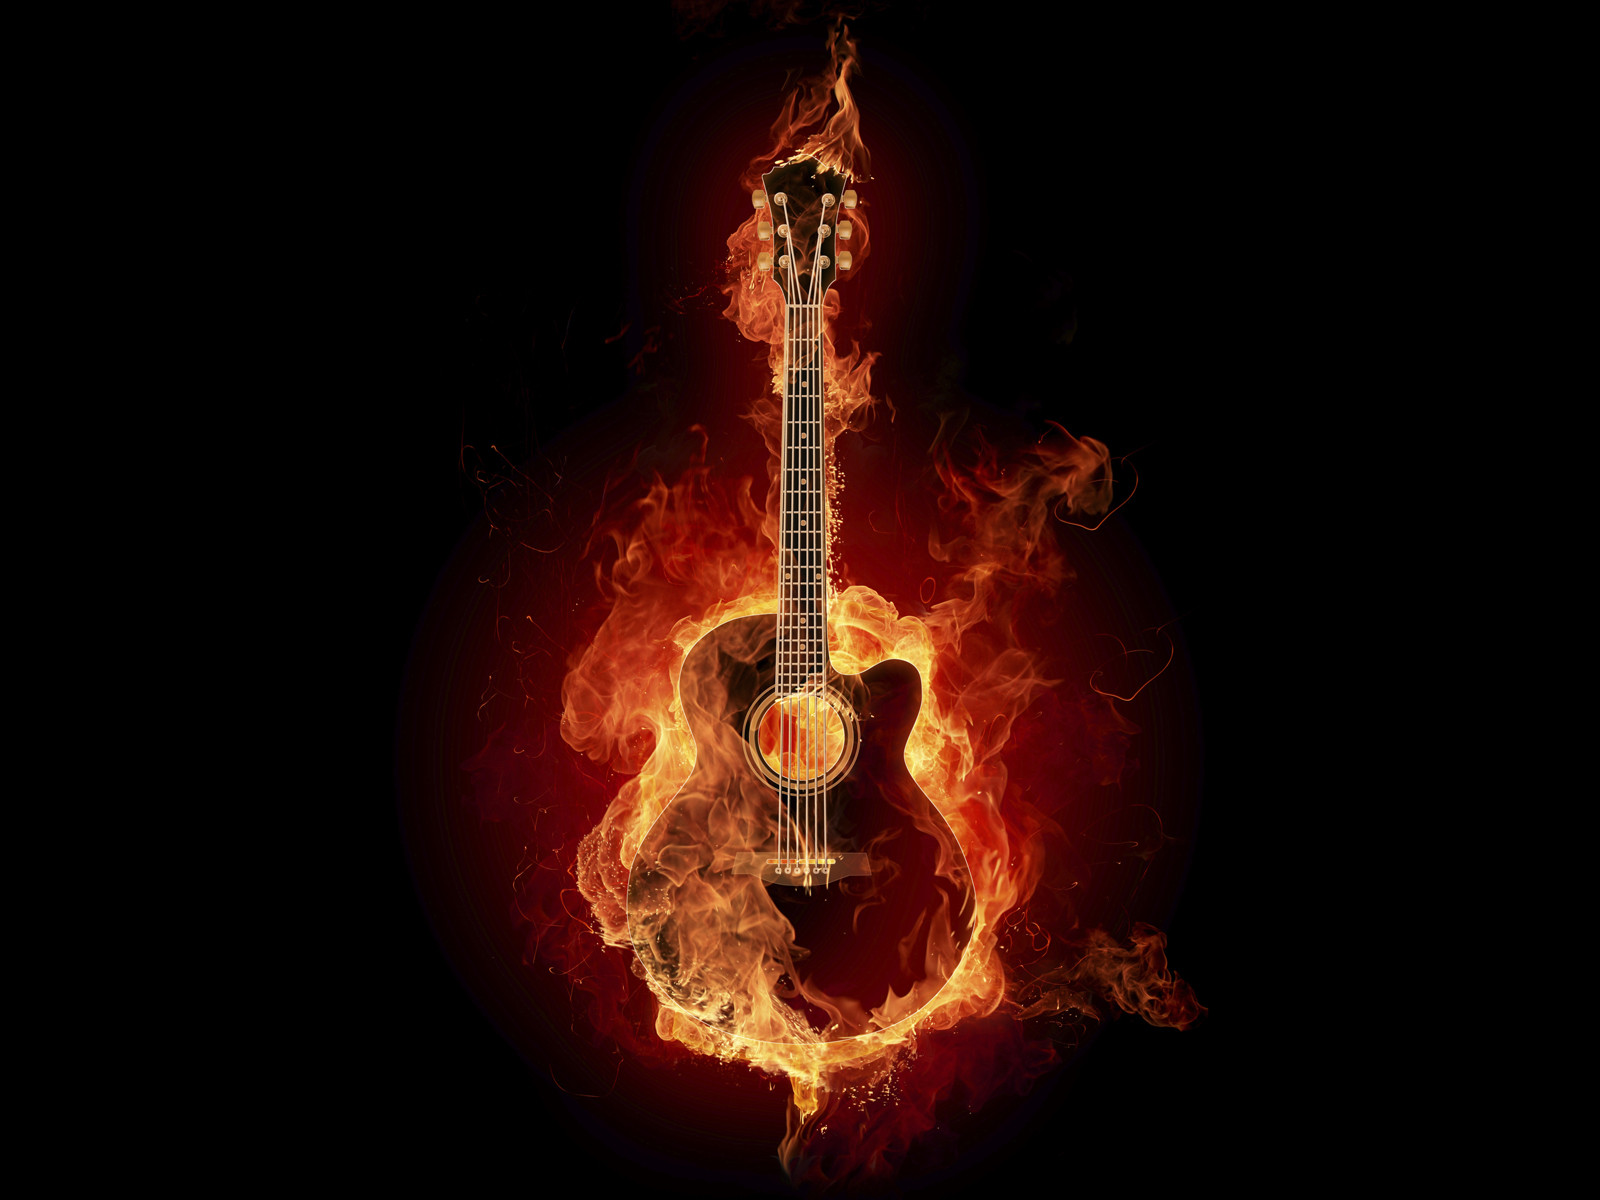 Wallpapers feuer effekte